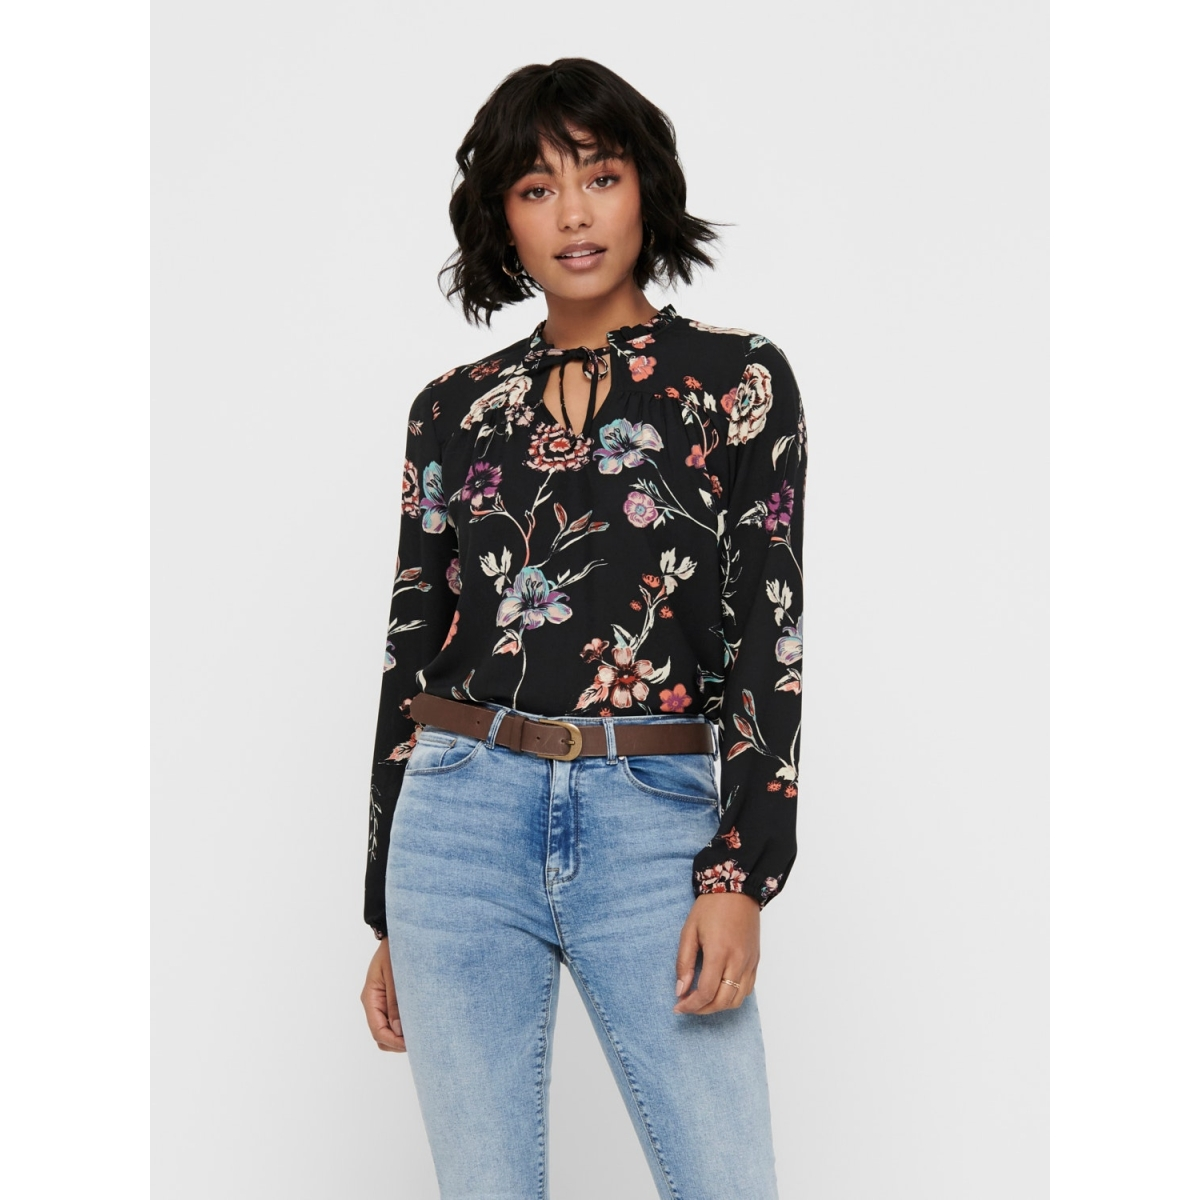 jdyruby l/s top wvn 15193834 jacqueline de yong blouse black/big flower